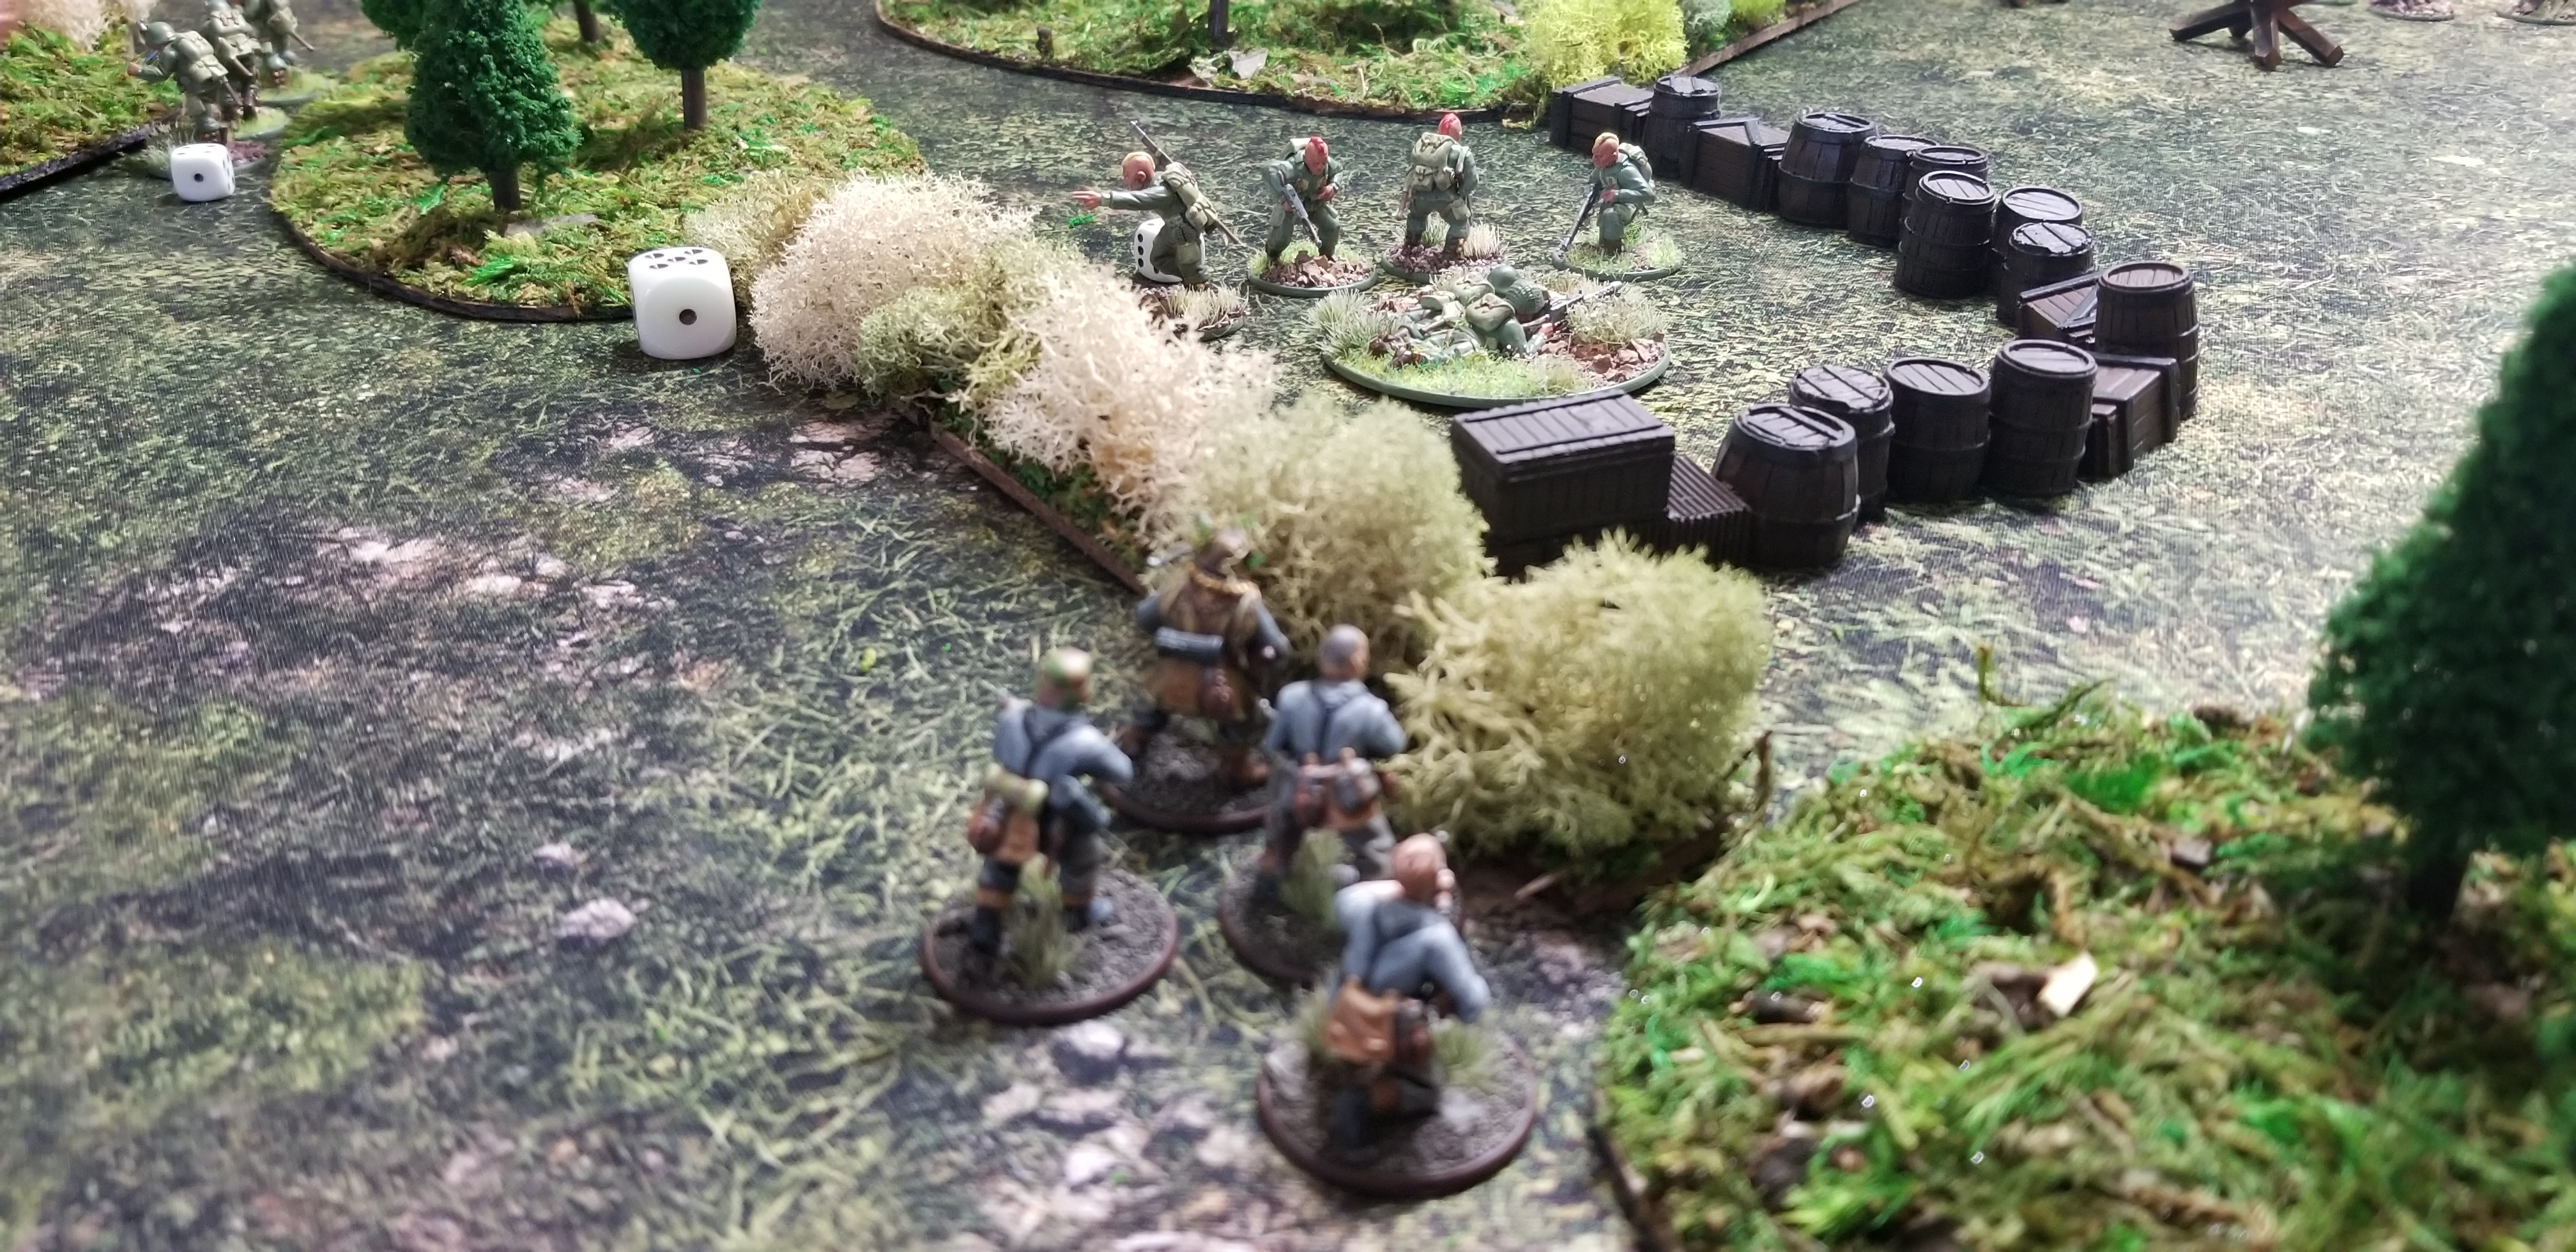 Armstrong's Allies versus Mmmmsausages! in a fierce infantry engagement